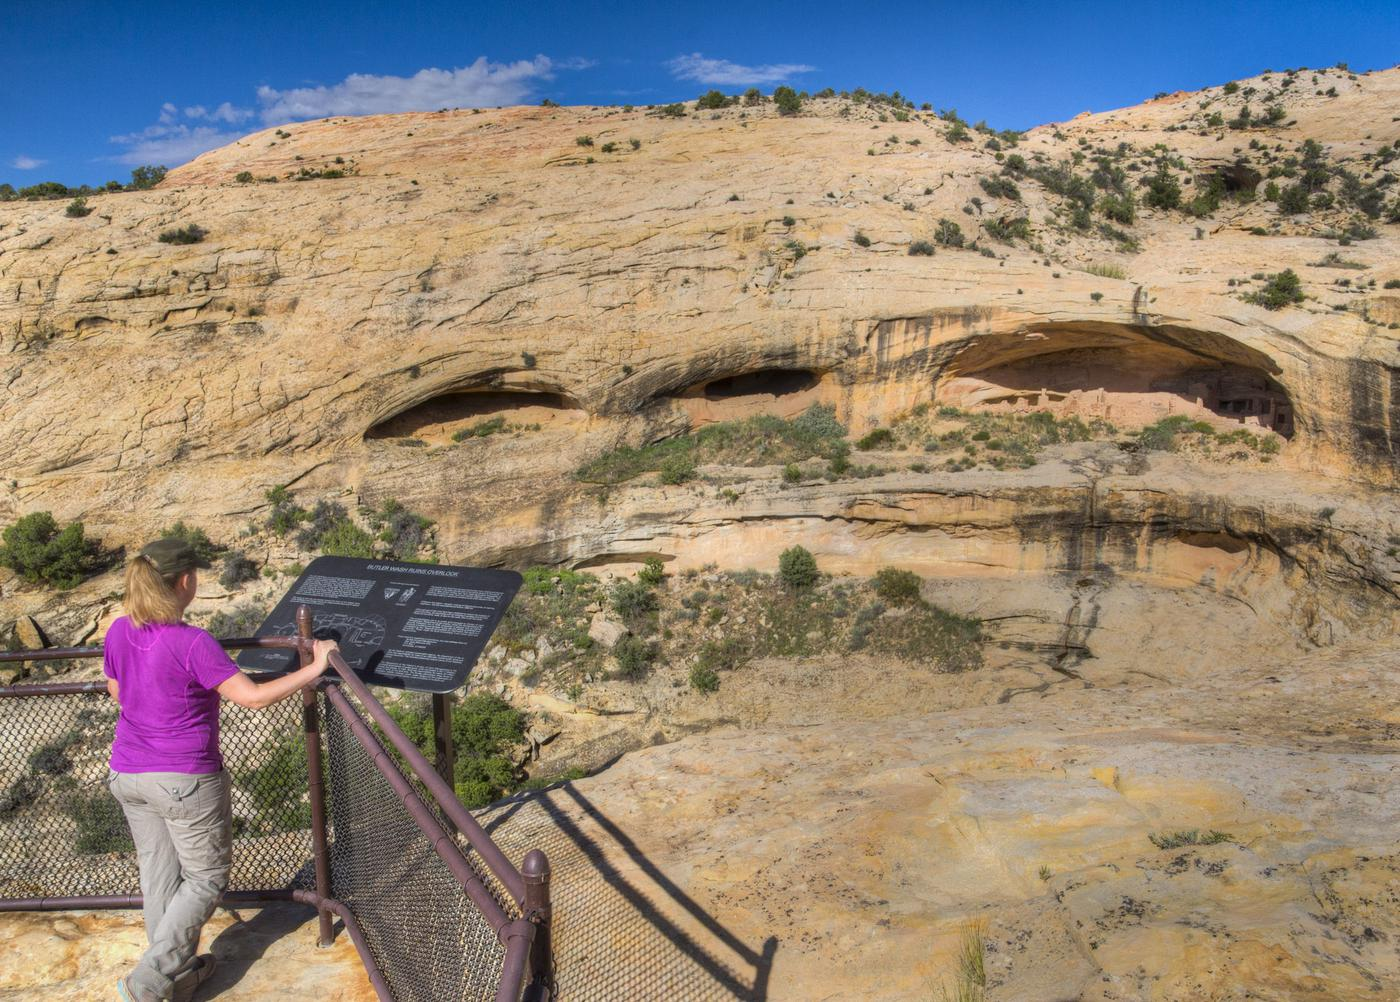 Cliff dwellings of the AnasaziPhoto of a woman at an interpretive overlook viewing cliff dwellings of the Anasazi.